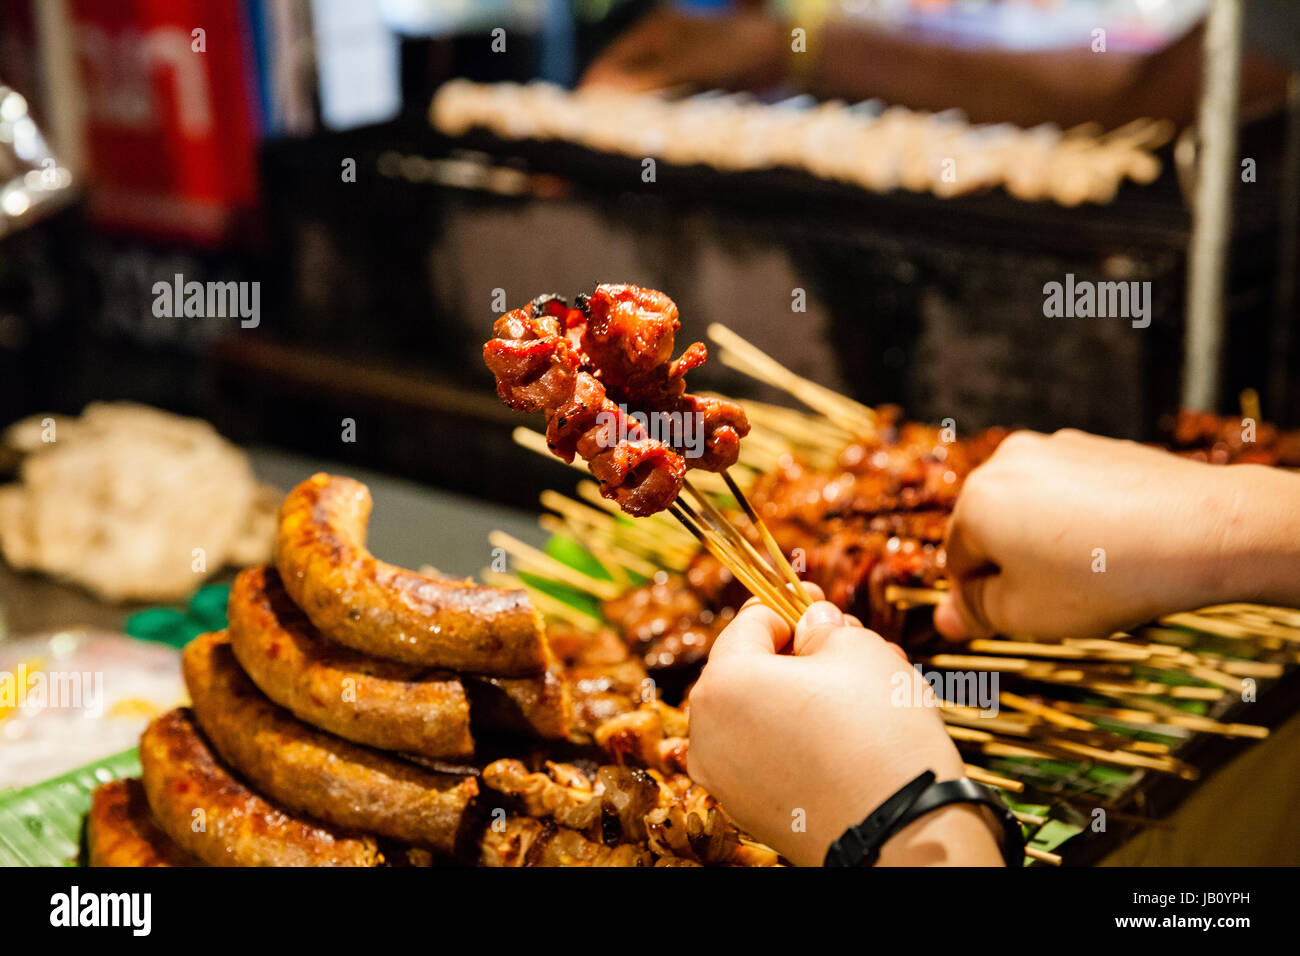 CHIANG MAI, THAILAND - AUGUST 27: Man buys grilled pork on skewers at the Sunday Market (Walking Street) on August - Stock Image